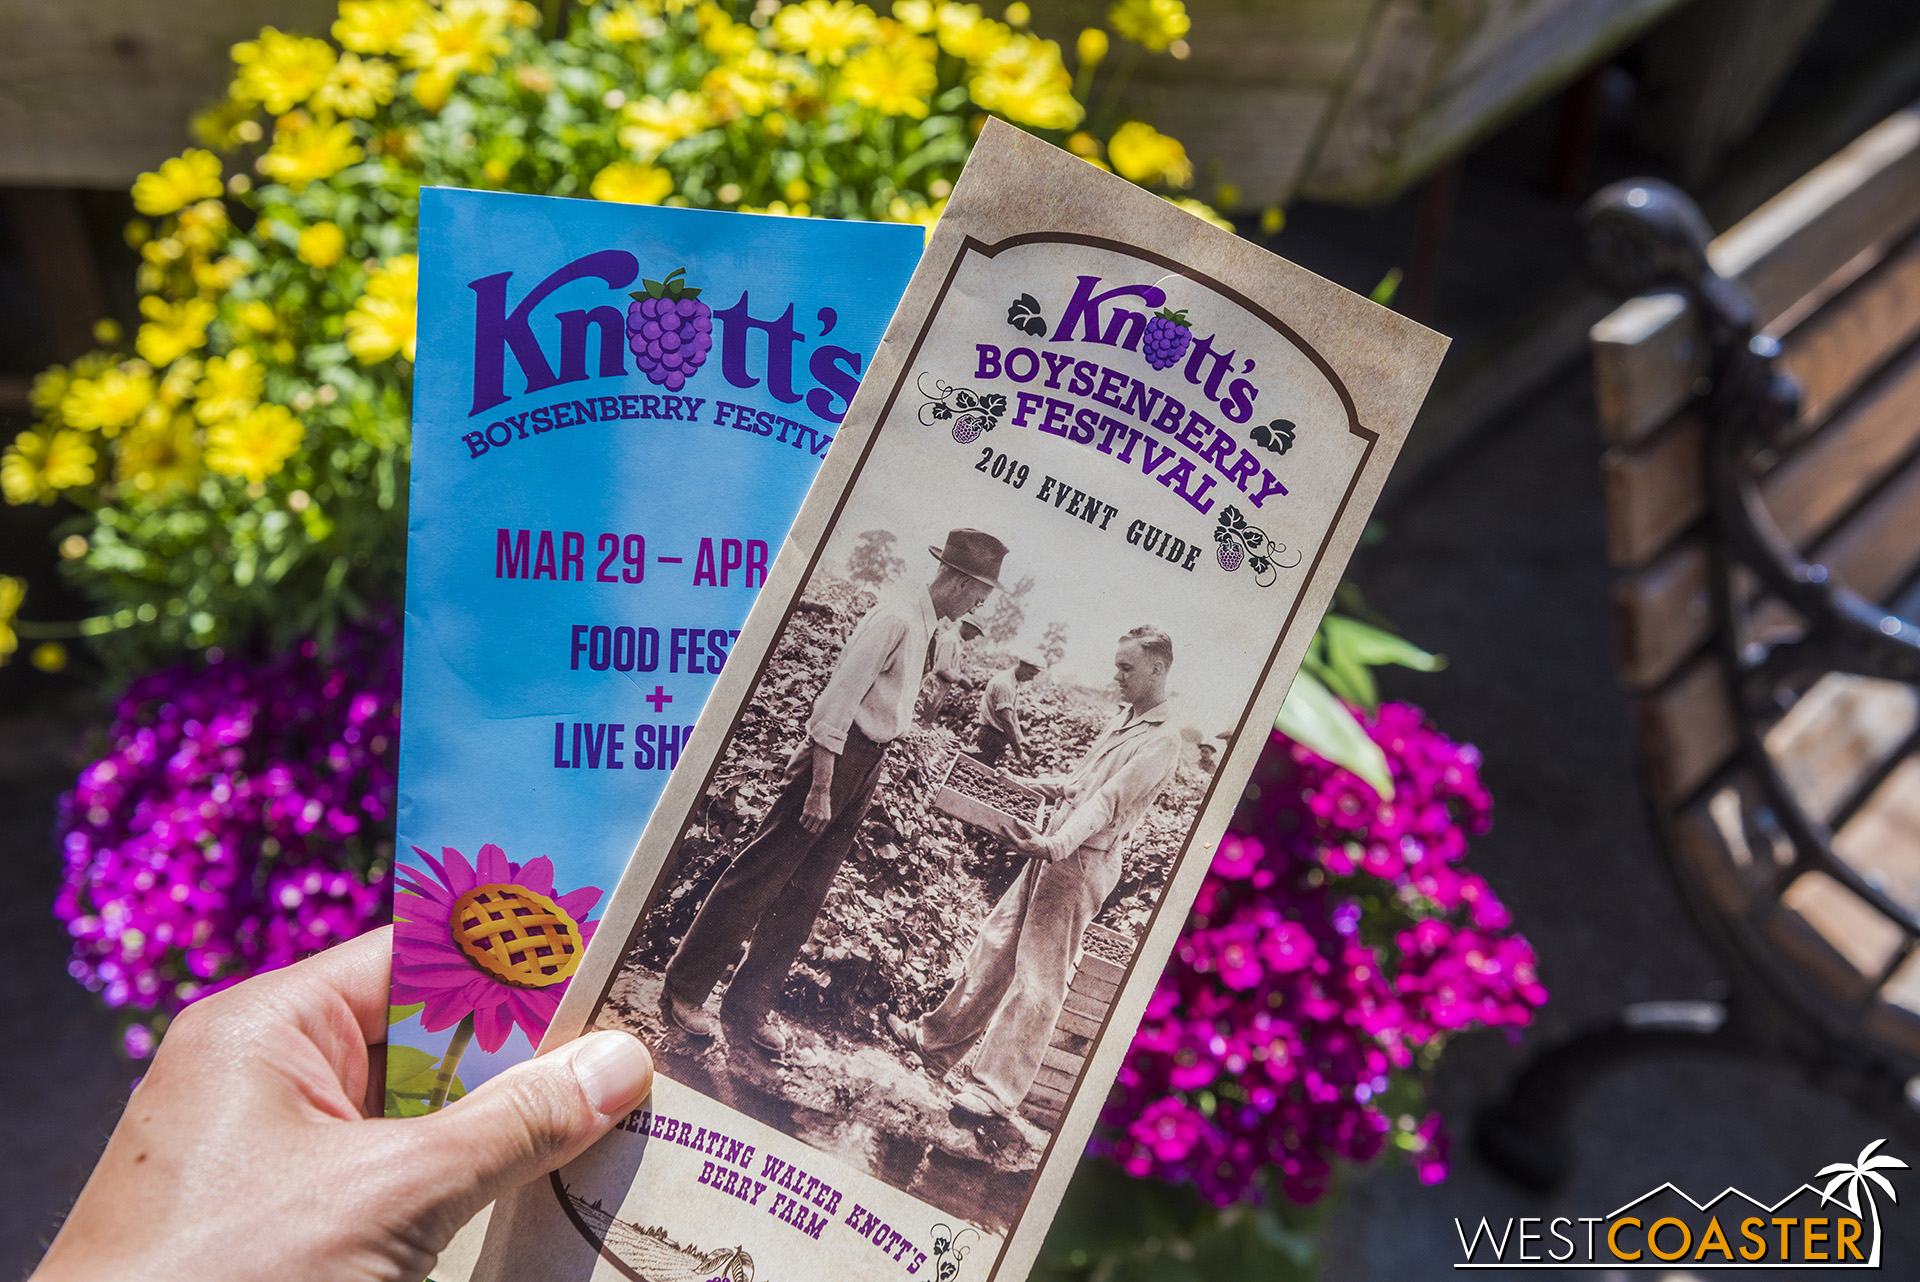 The Boysenberry Festival is back at Knott's!